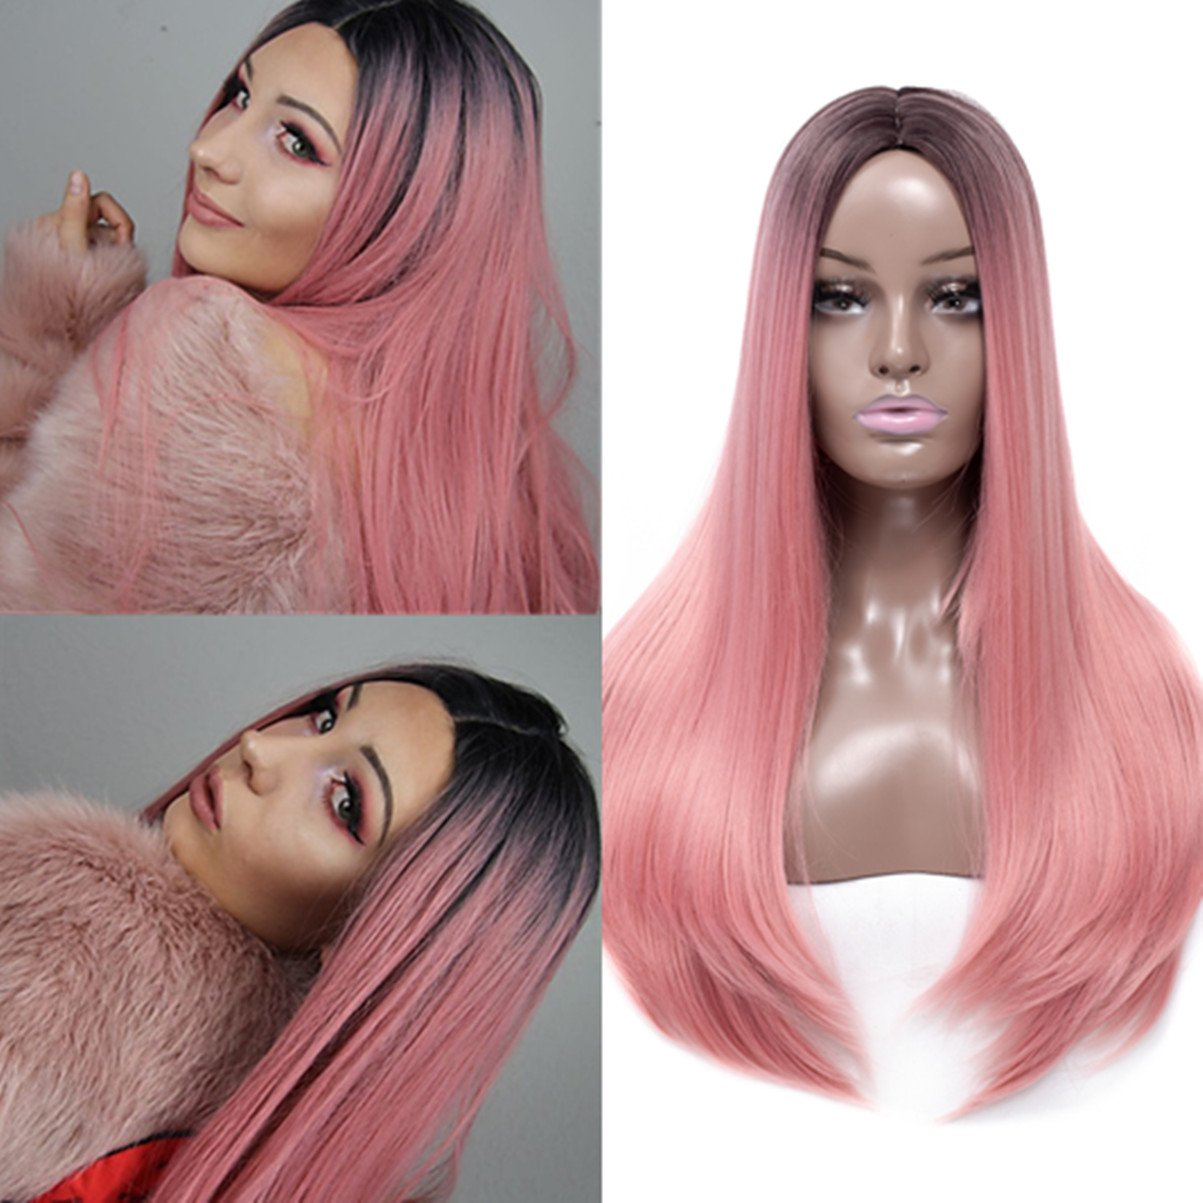 ATOZQueen Synthetic Long Straight Ombre Wig Black Root to Peach Pink Wigs with Middle Part for Women